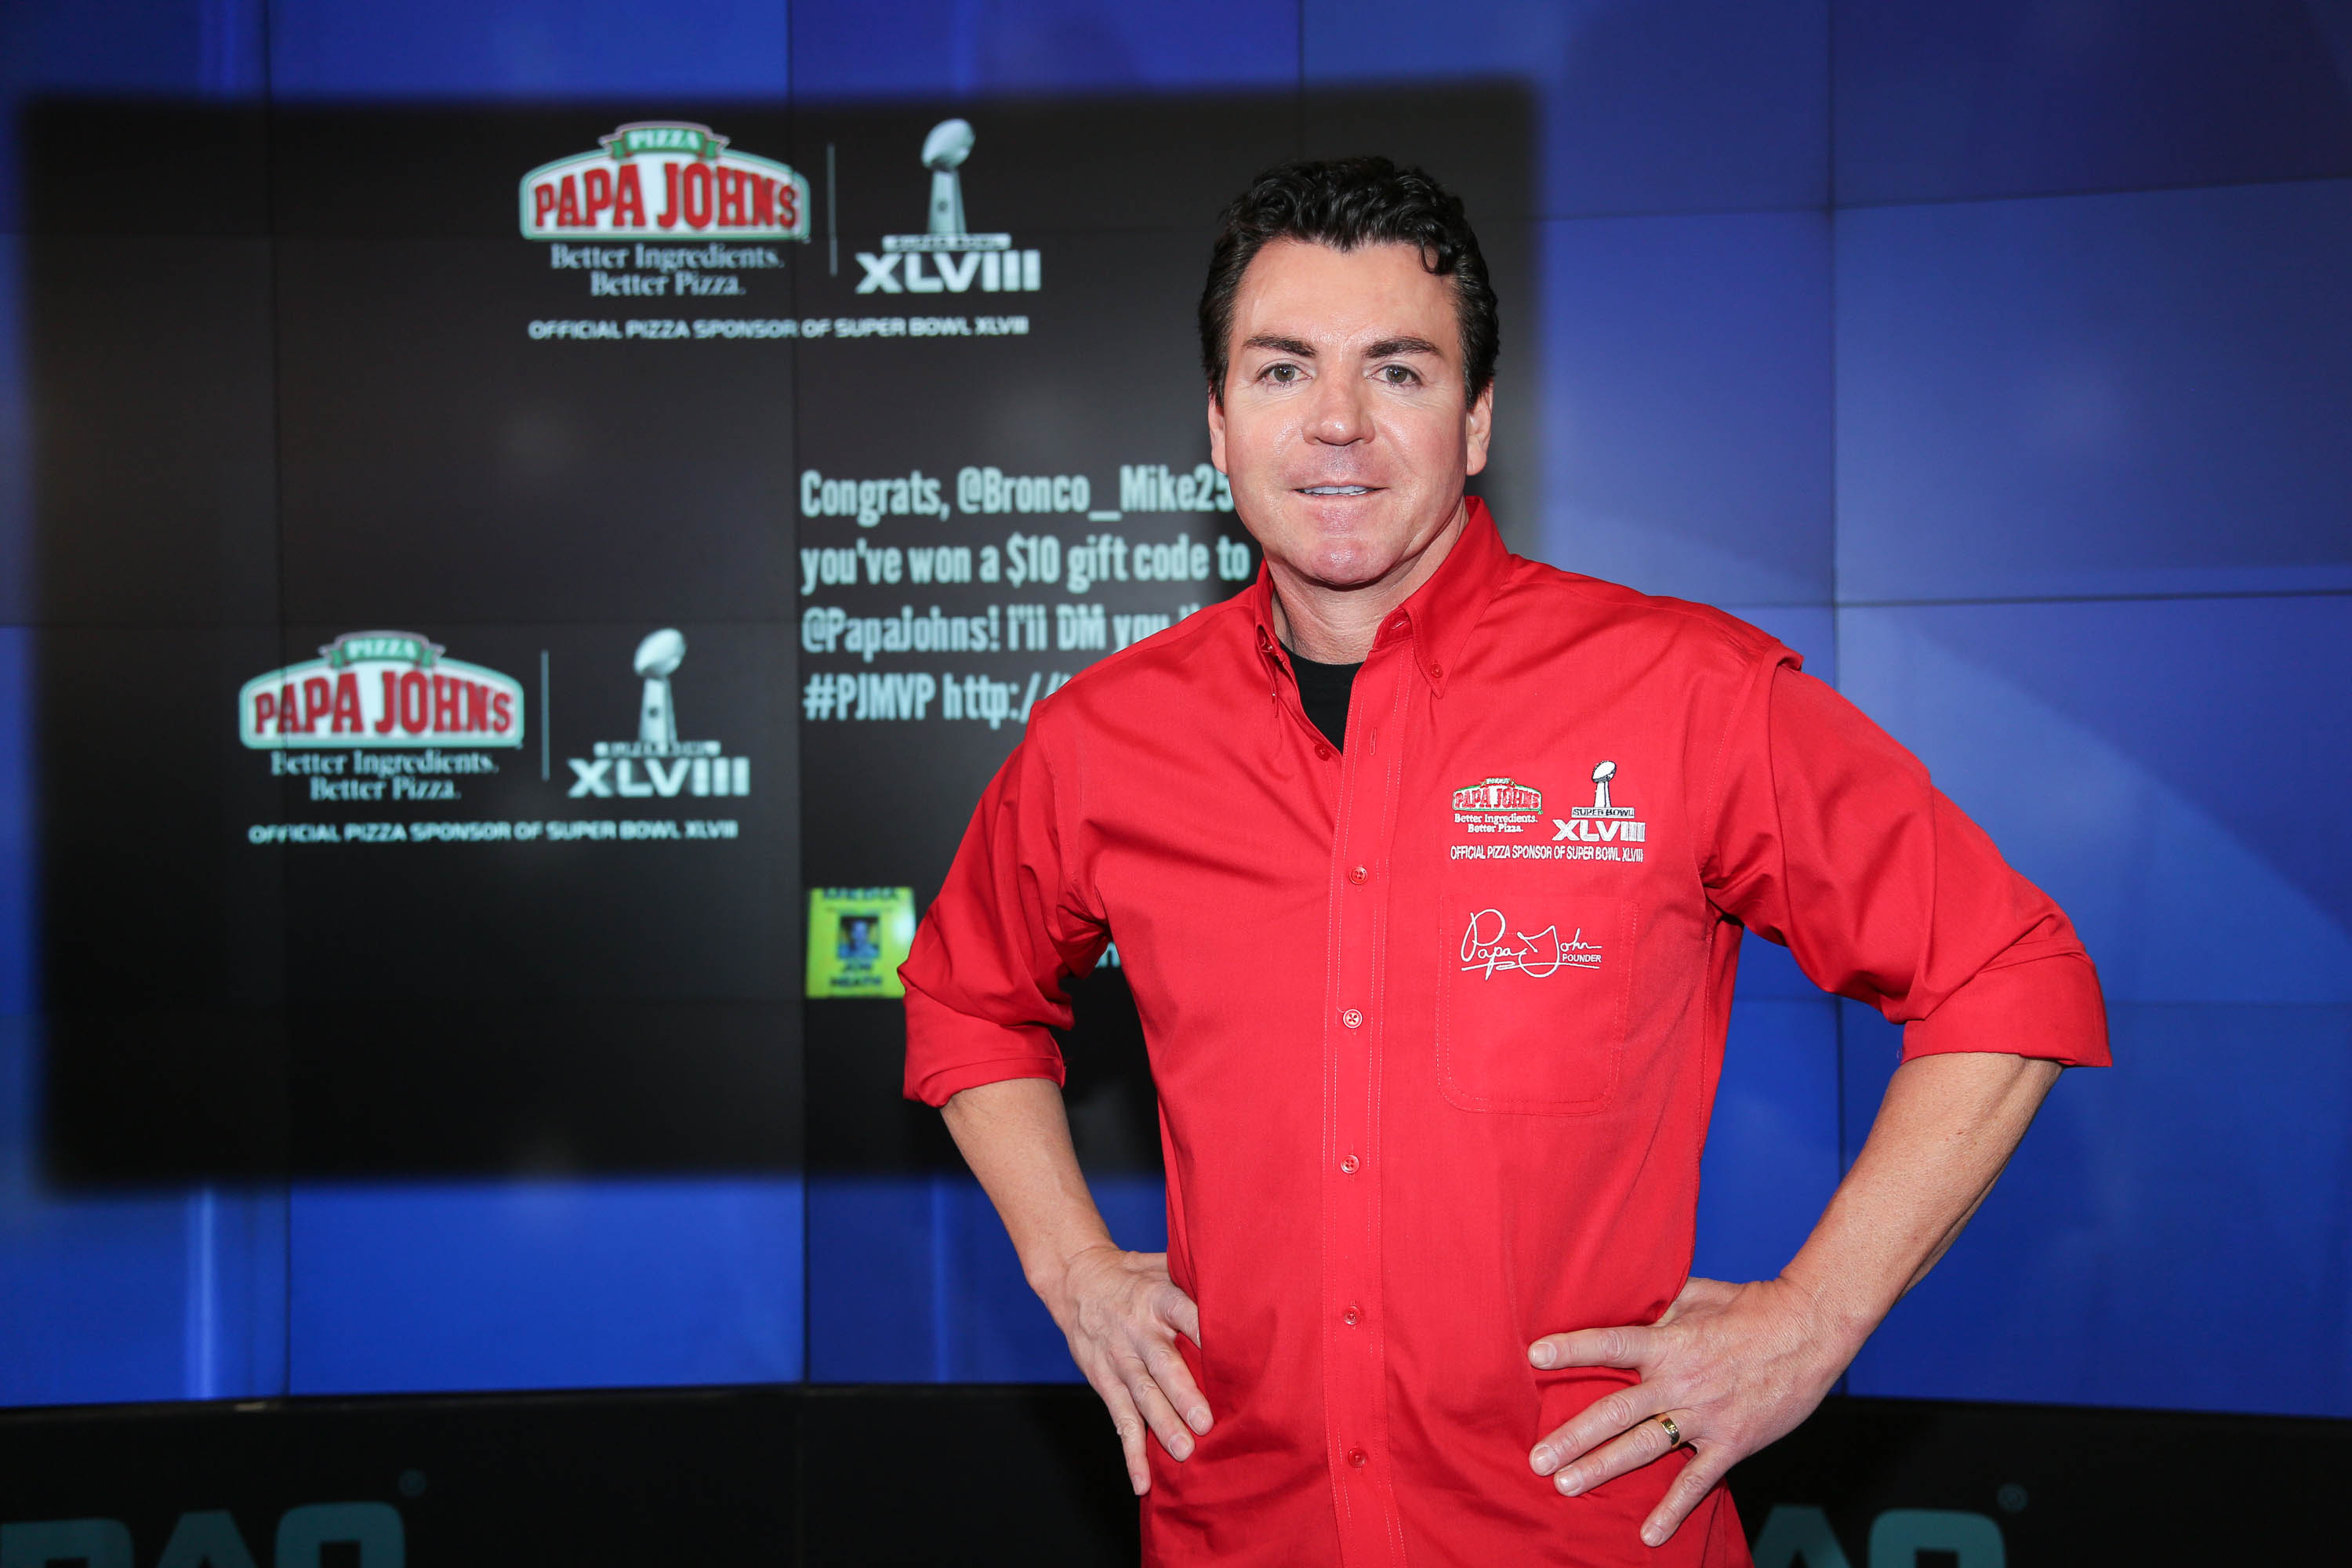 Papa John's Founder Decries N-Word 'Coup' as he Offloads Pizza Company Shares